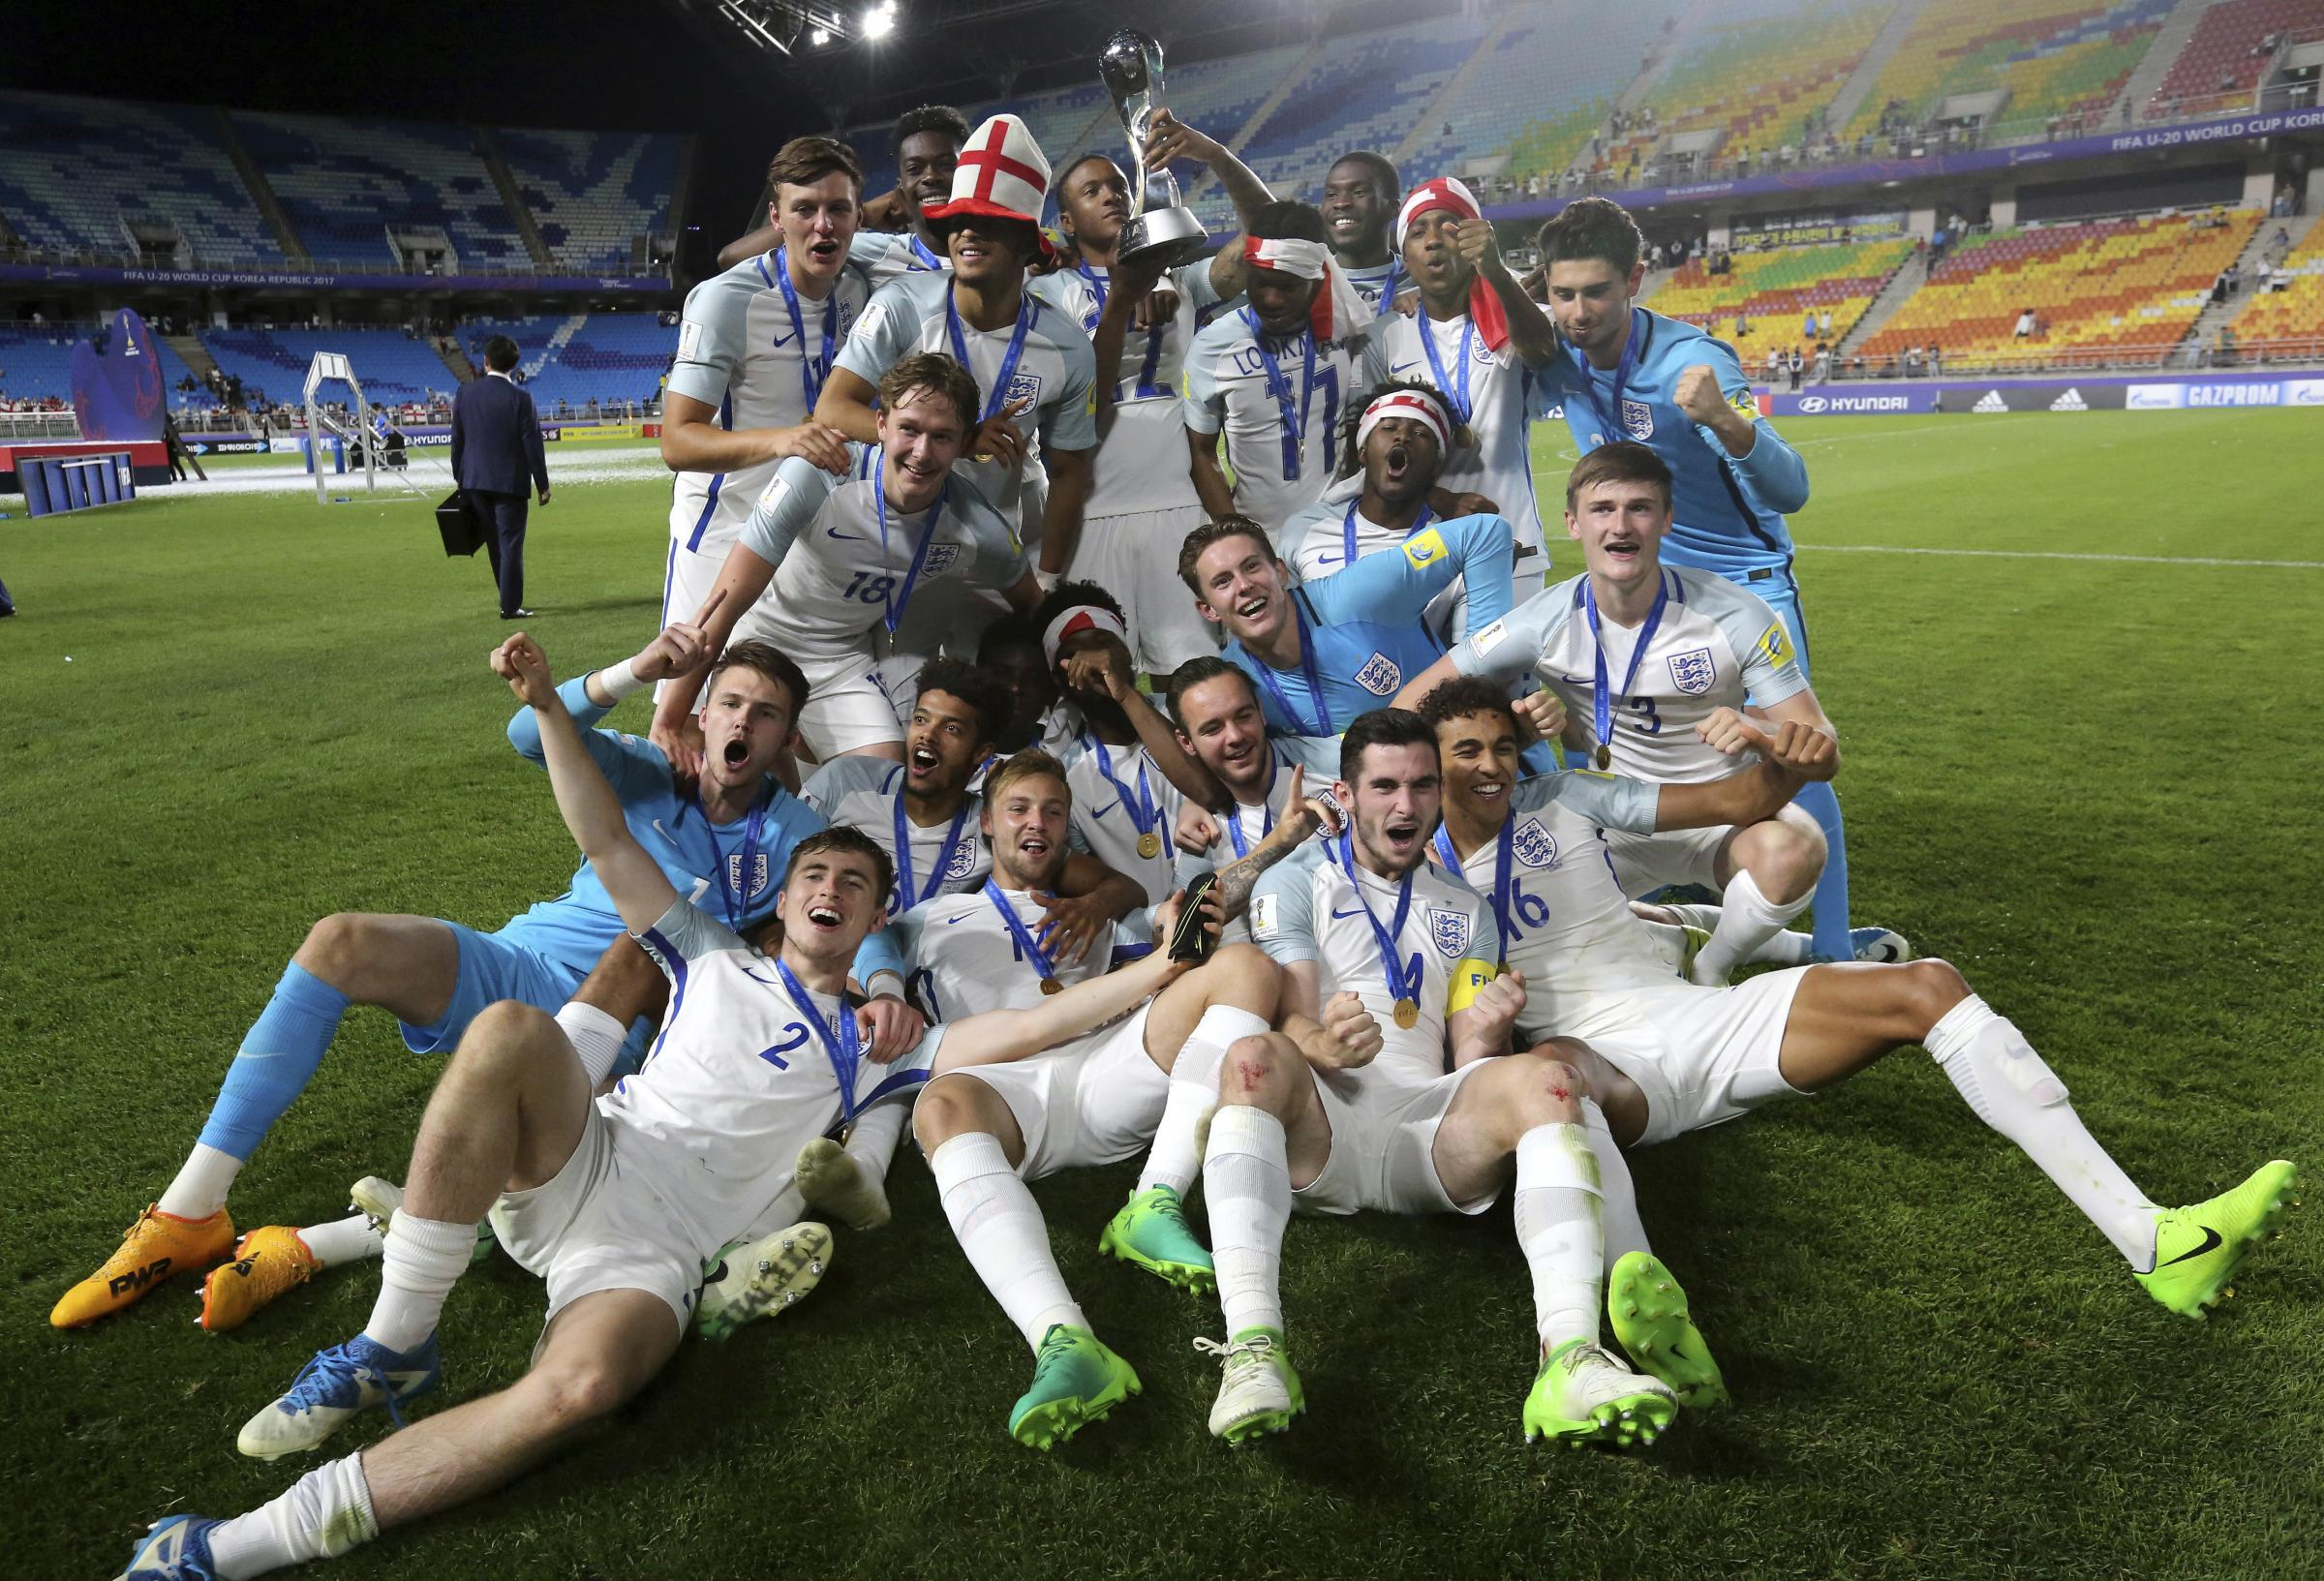 Calvert-Lewin goal sees England defeat Venezuela in final